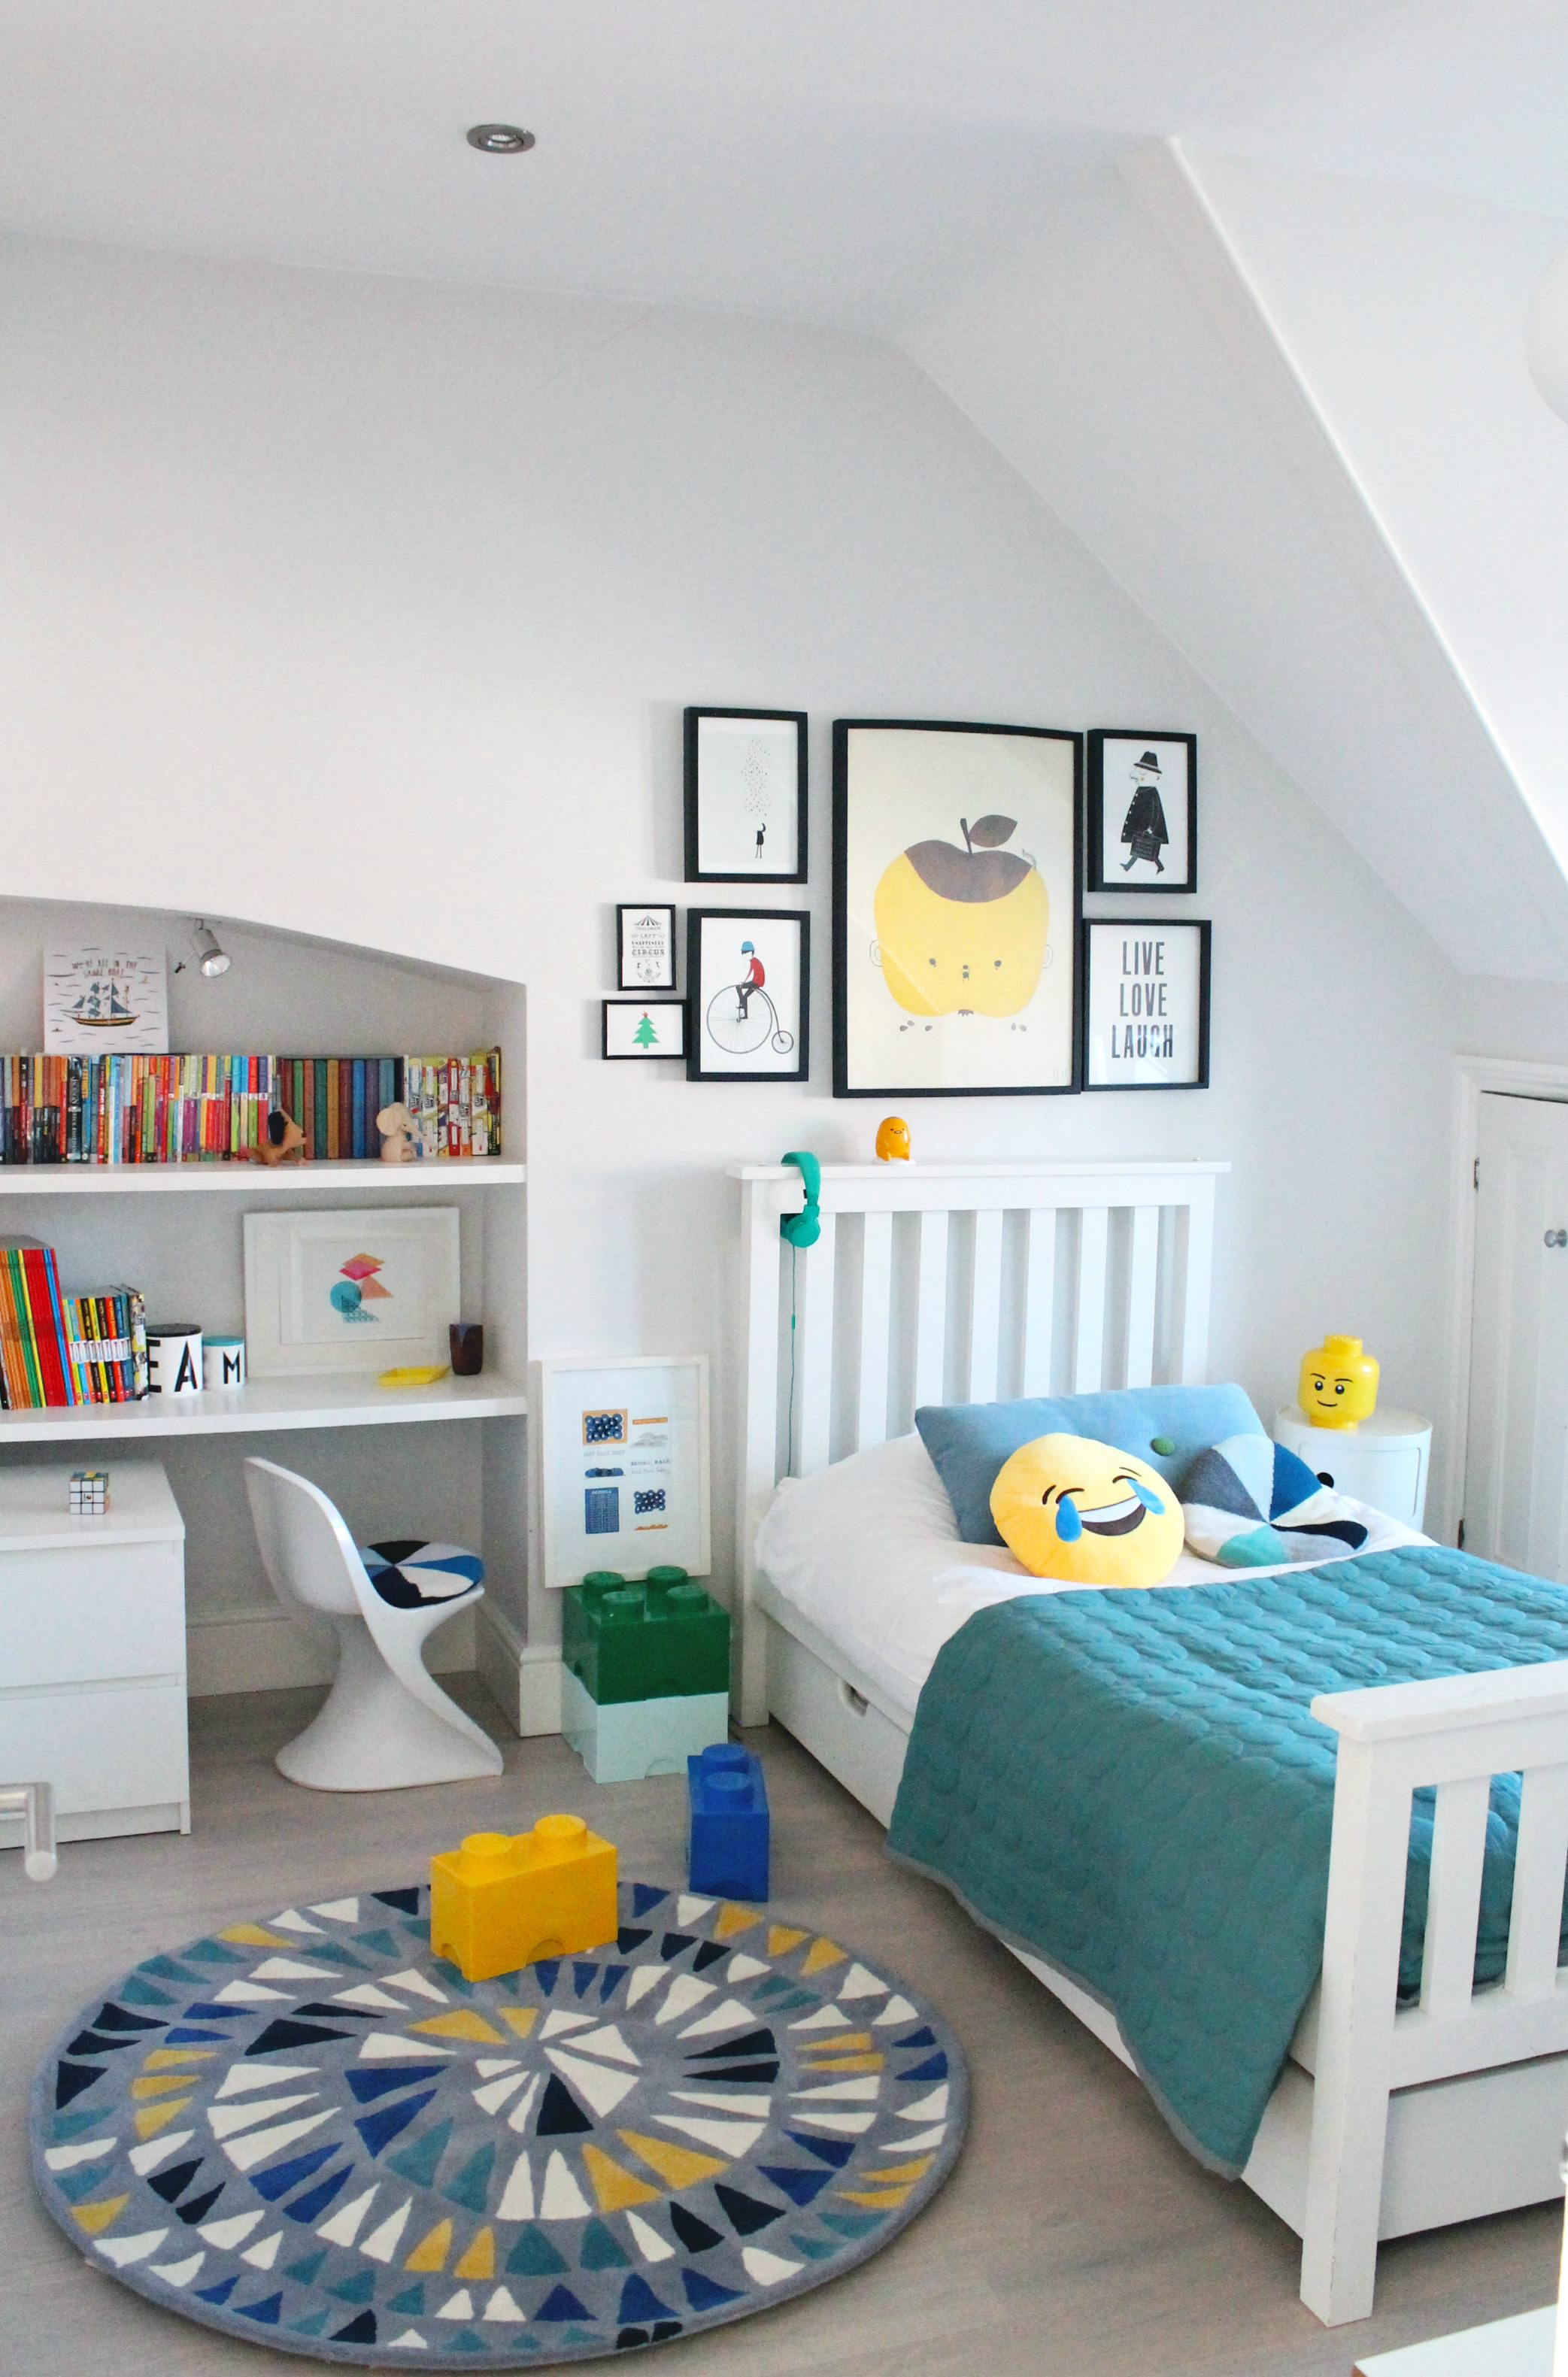 LittleBIGBELL Boys Bedroom Ideas Decorating With A Rug